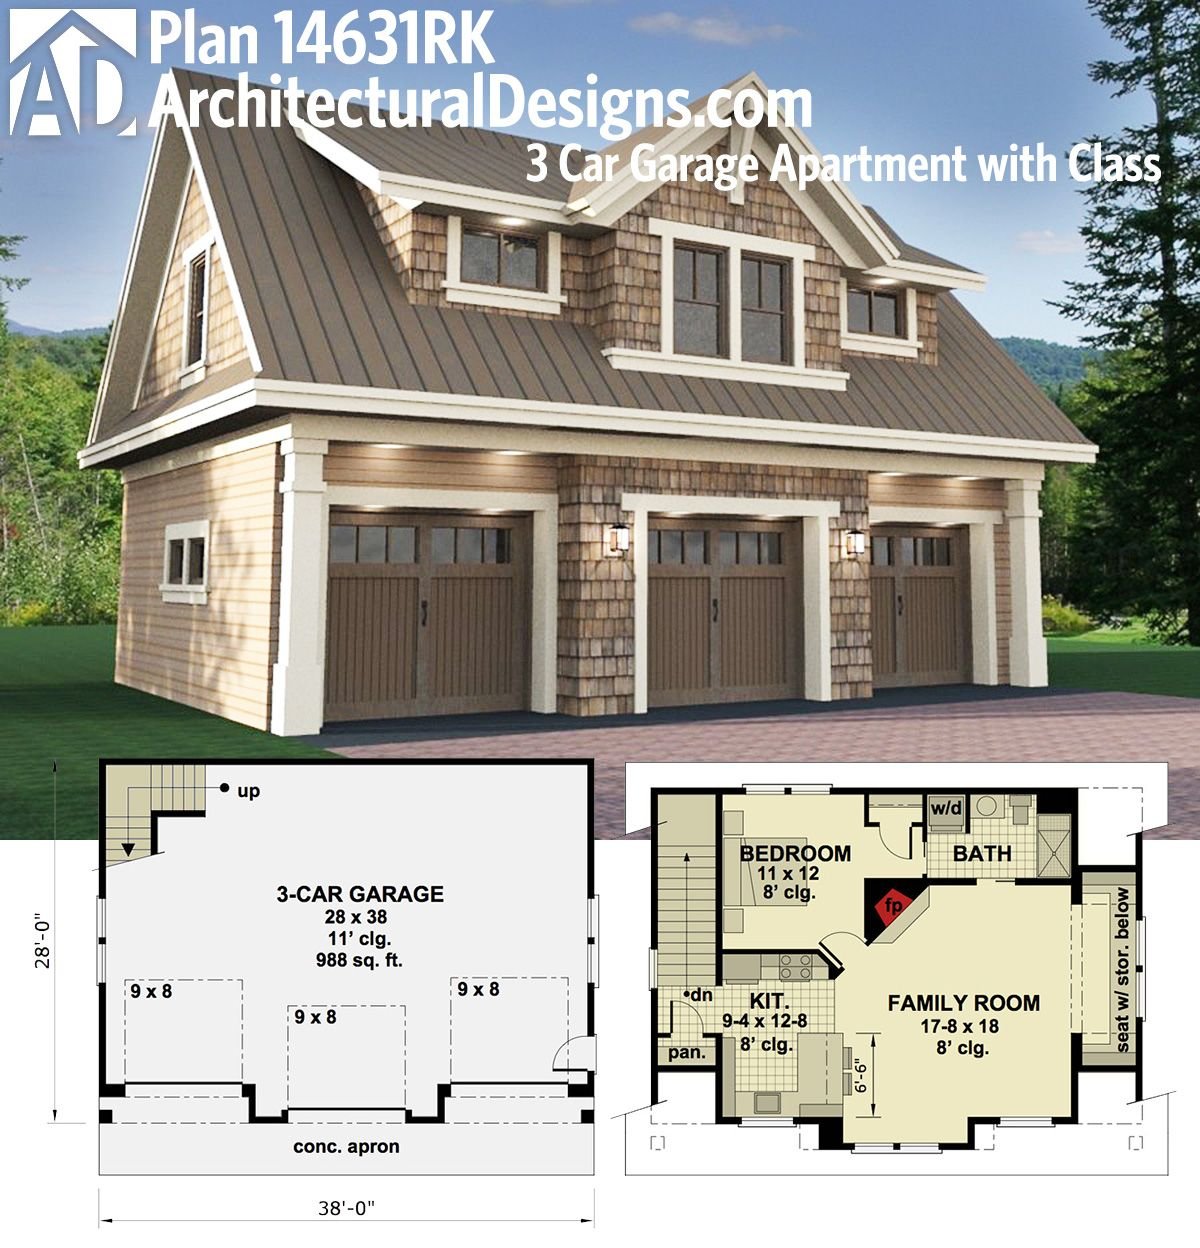 Architectural Designs Carriage House Plan 14631RK Gives You Parking For 3  Cars On The Main Floor And A Fully Functioning Apartment With Almost 1,000  Sq. Ft. ...